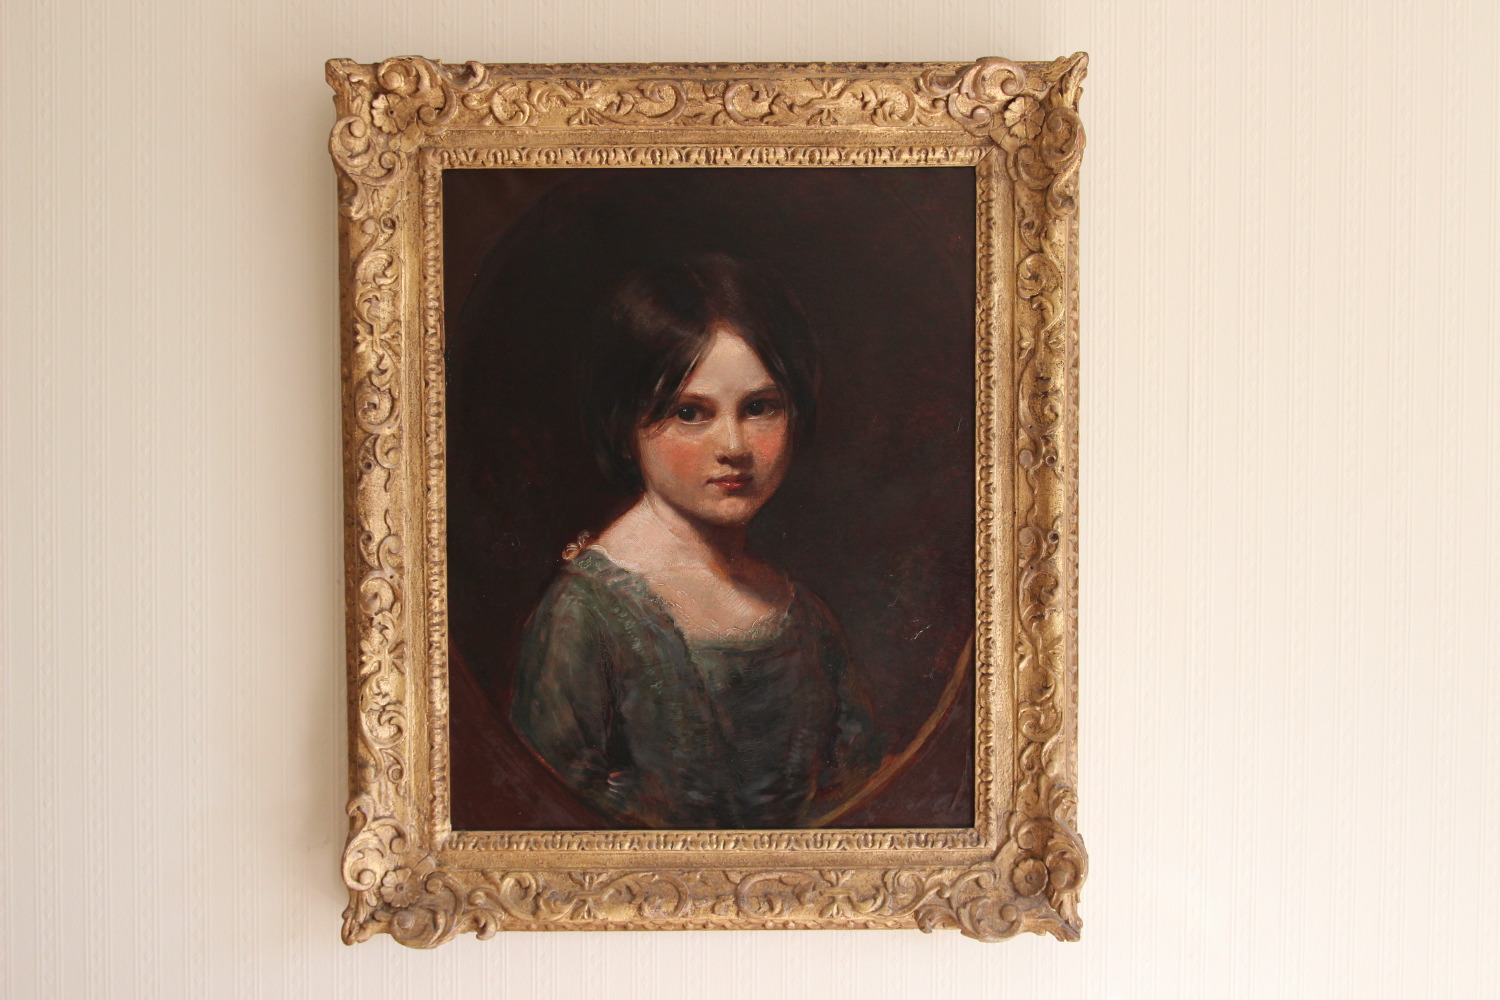 Laura Richmond by her father George, in the frame